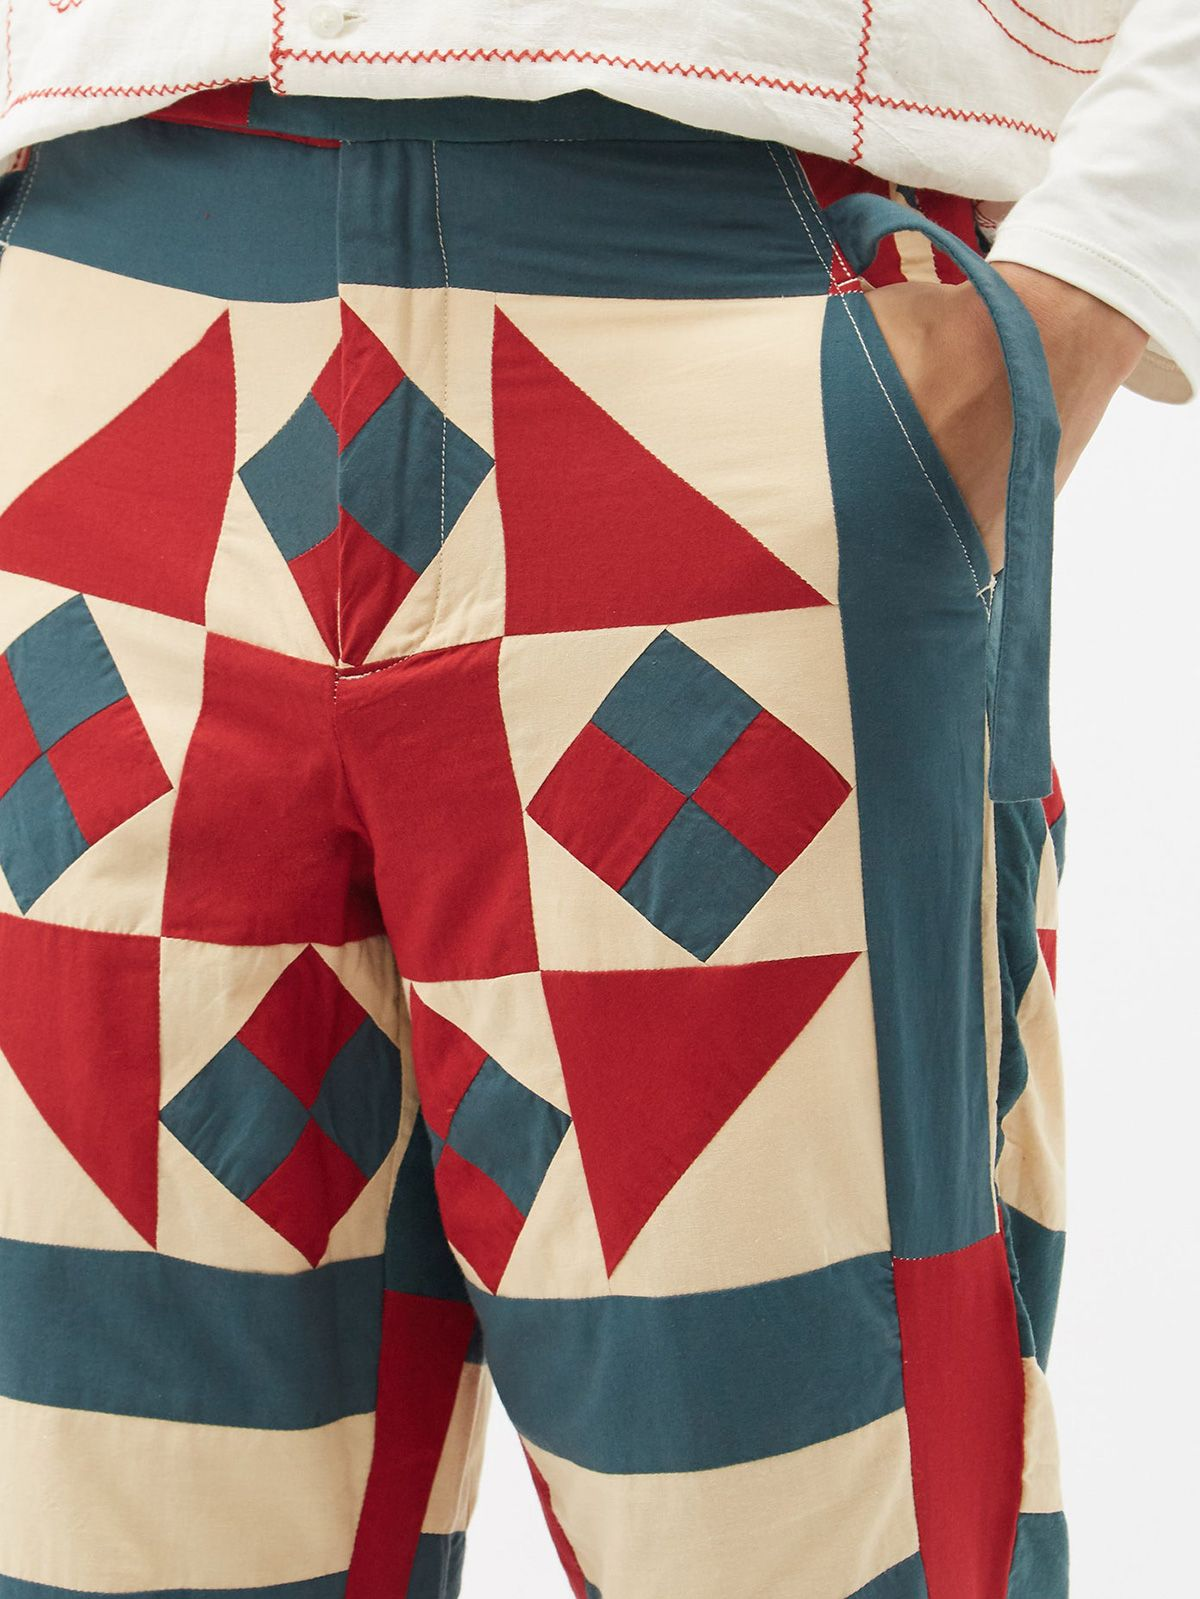 Wild Pants Top This Month's Best in Luxury Fashion